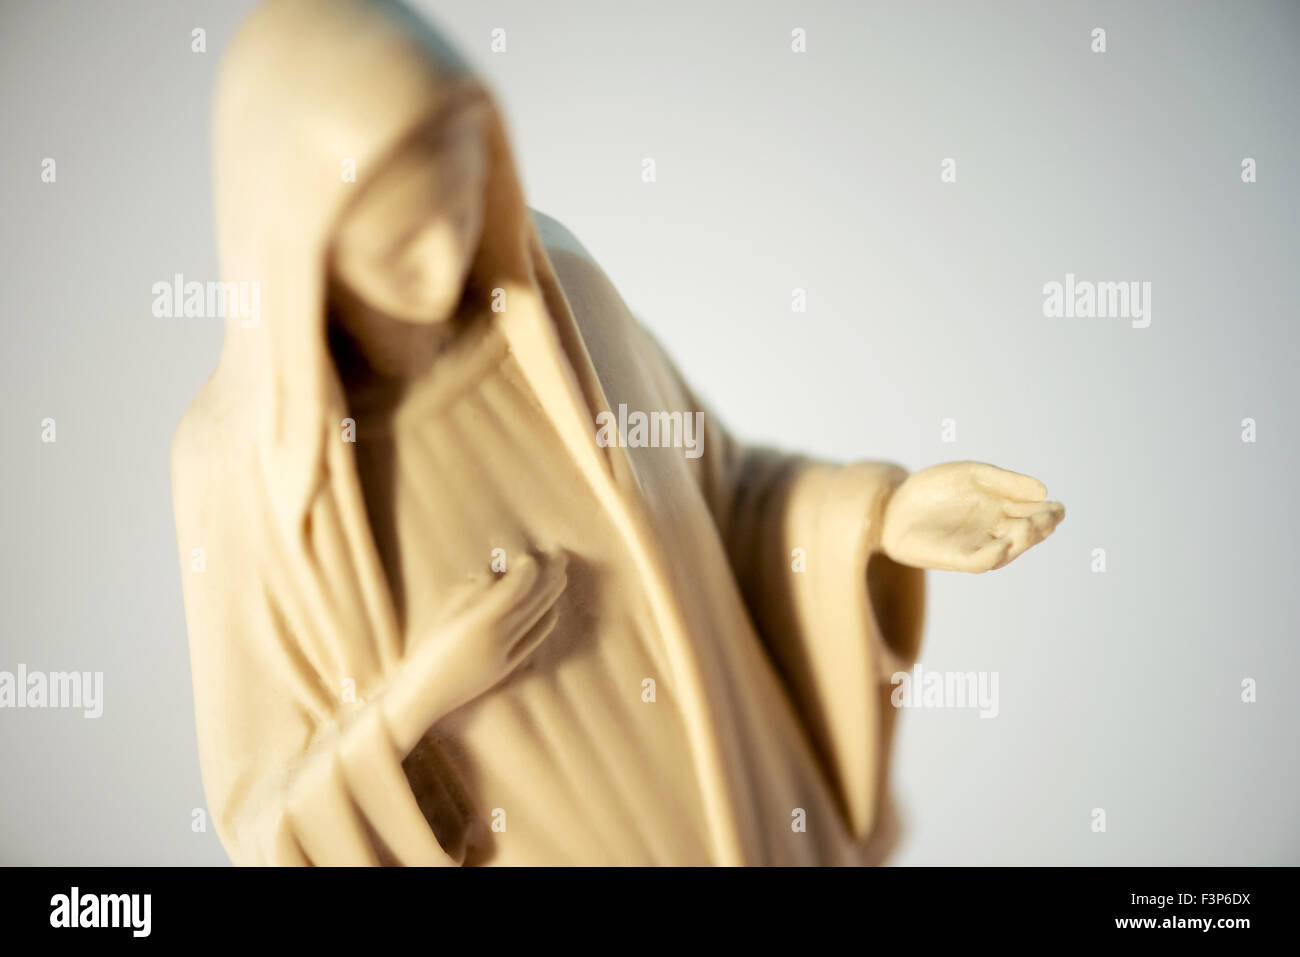 Figure of the Virgin Mary with her head bowed in humility depicting charity as she holds out her extended palm, - Stock Image